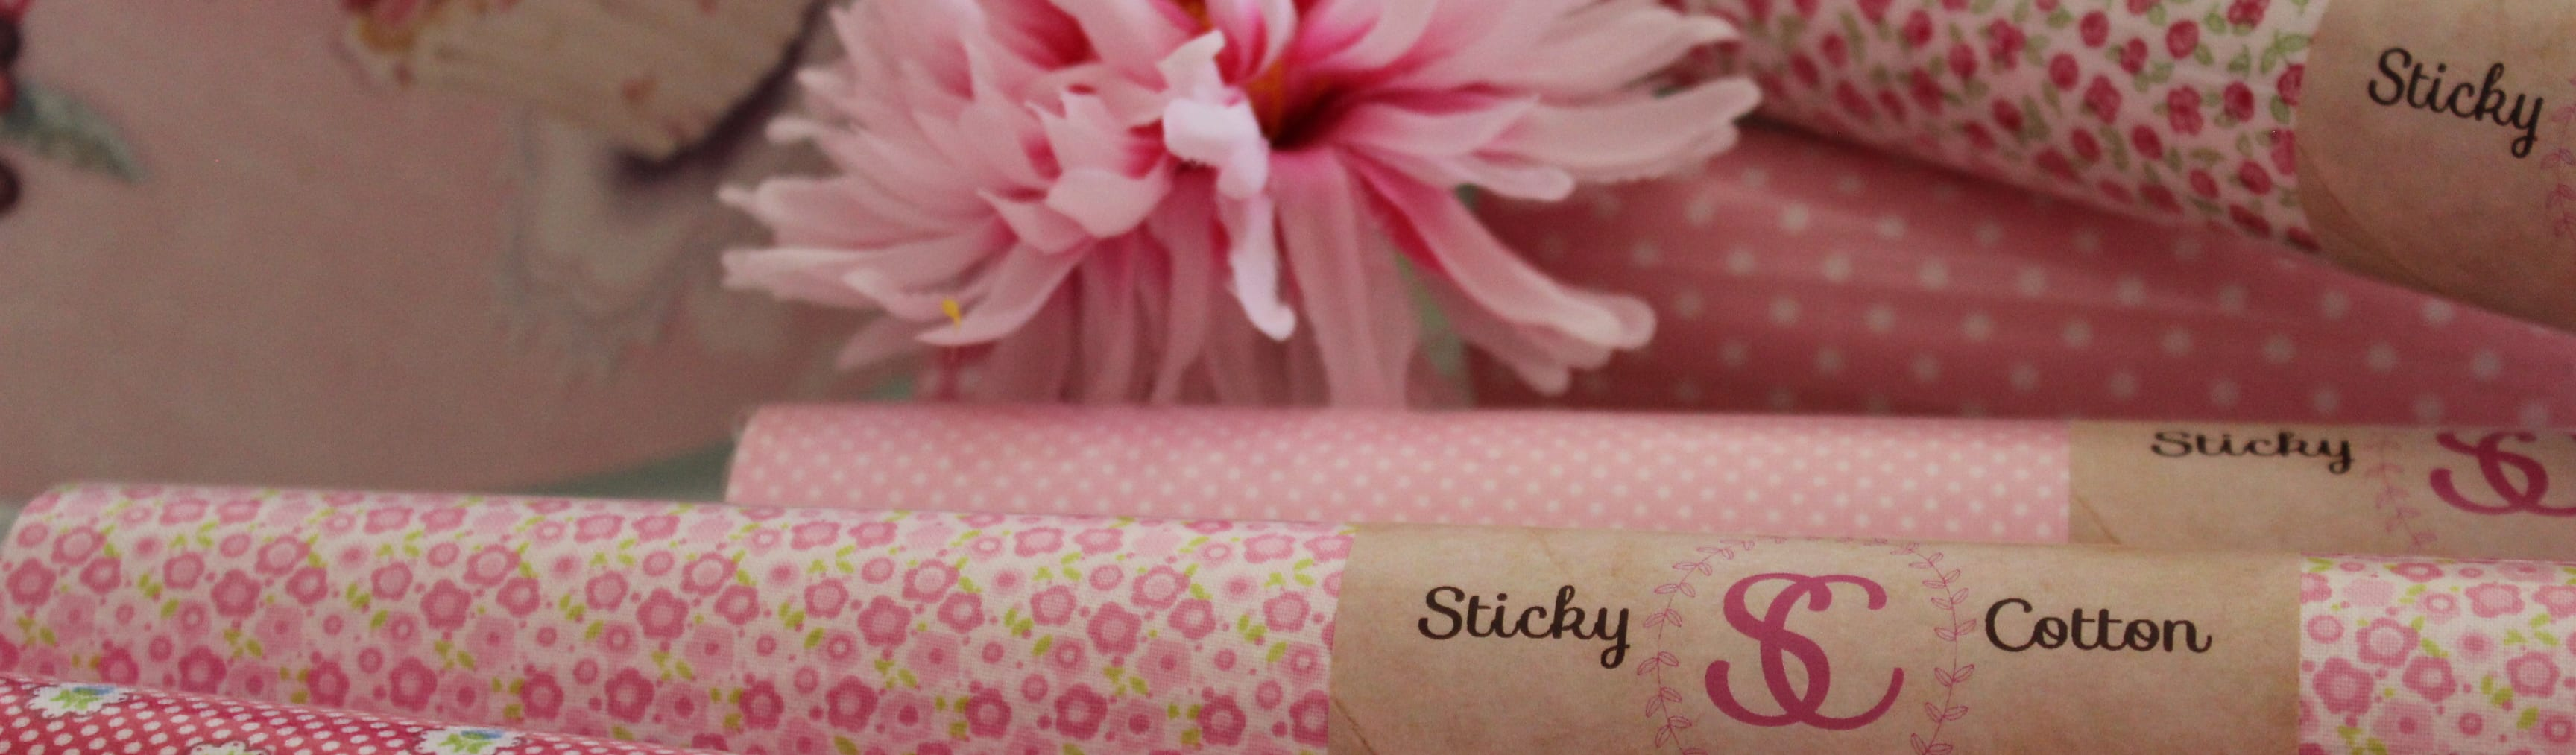 STICKY COTTON